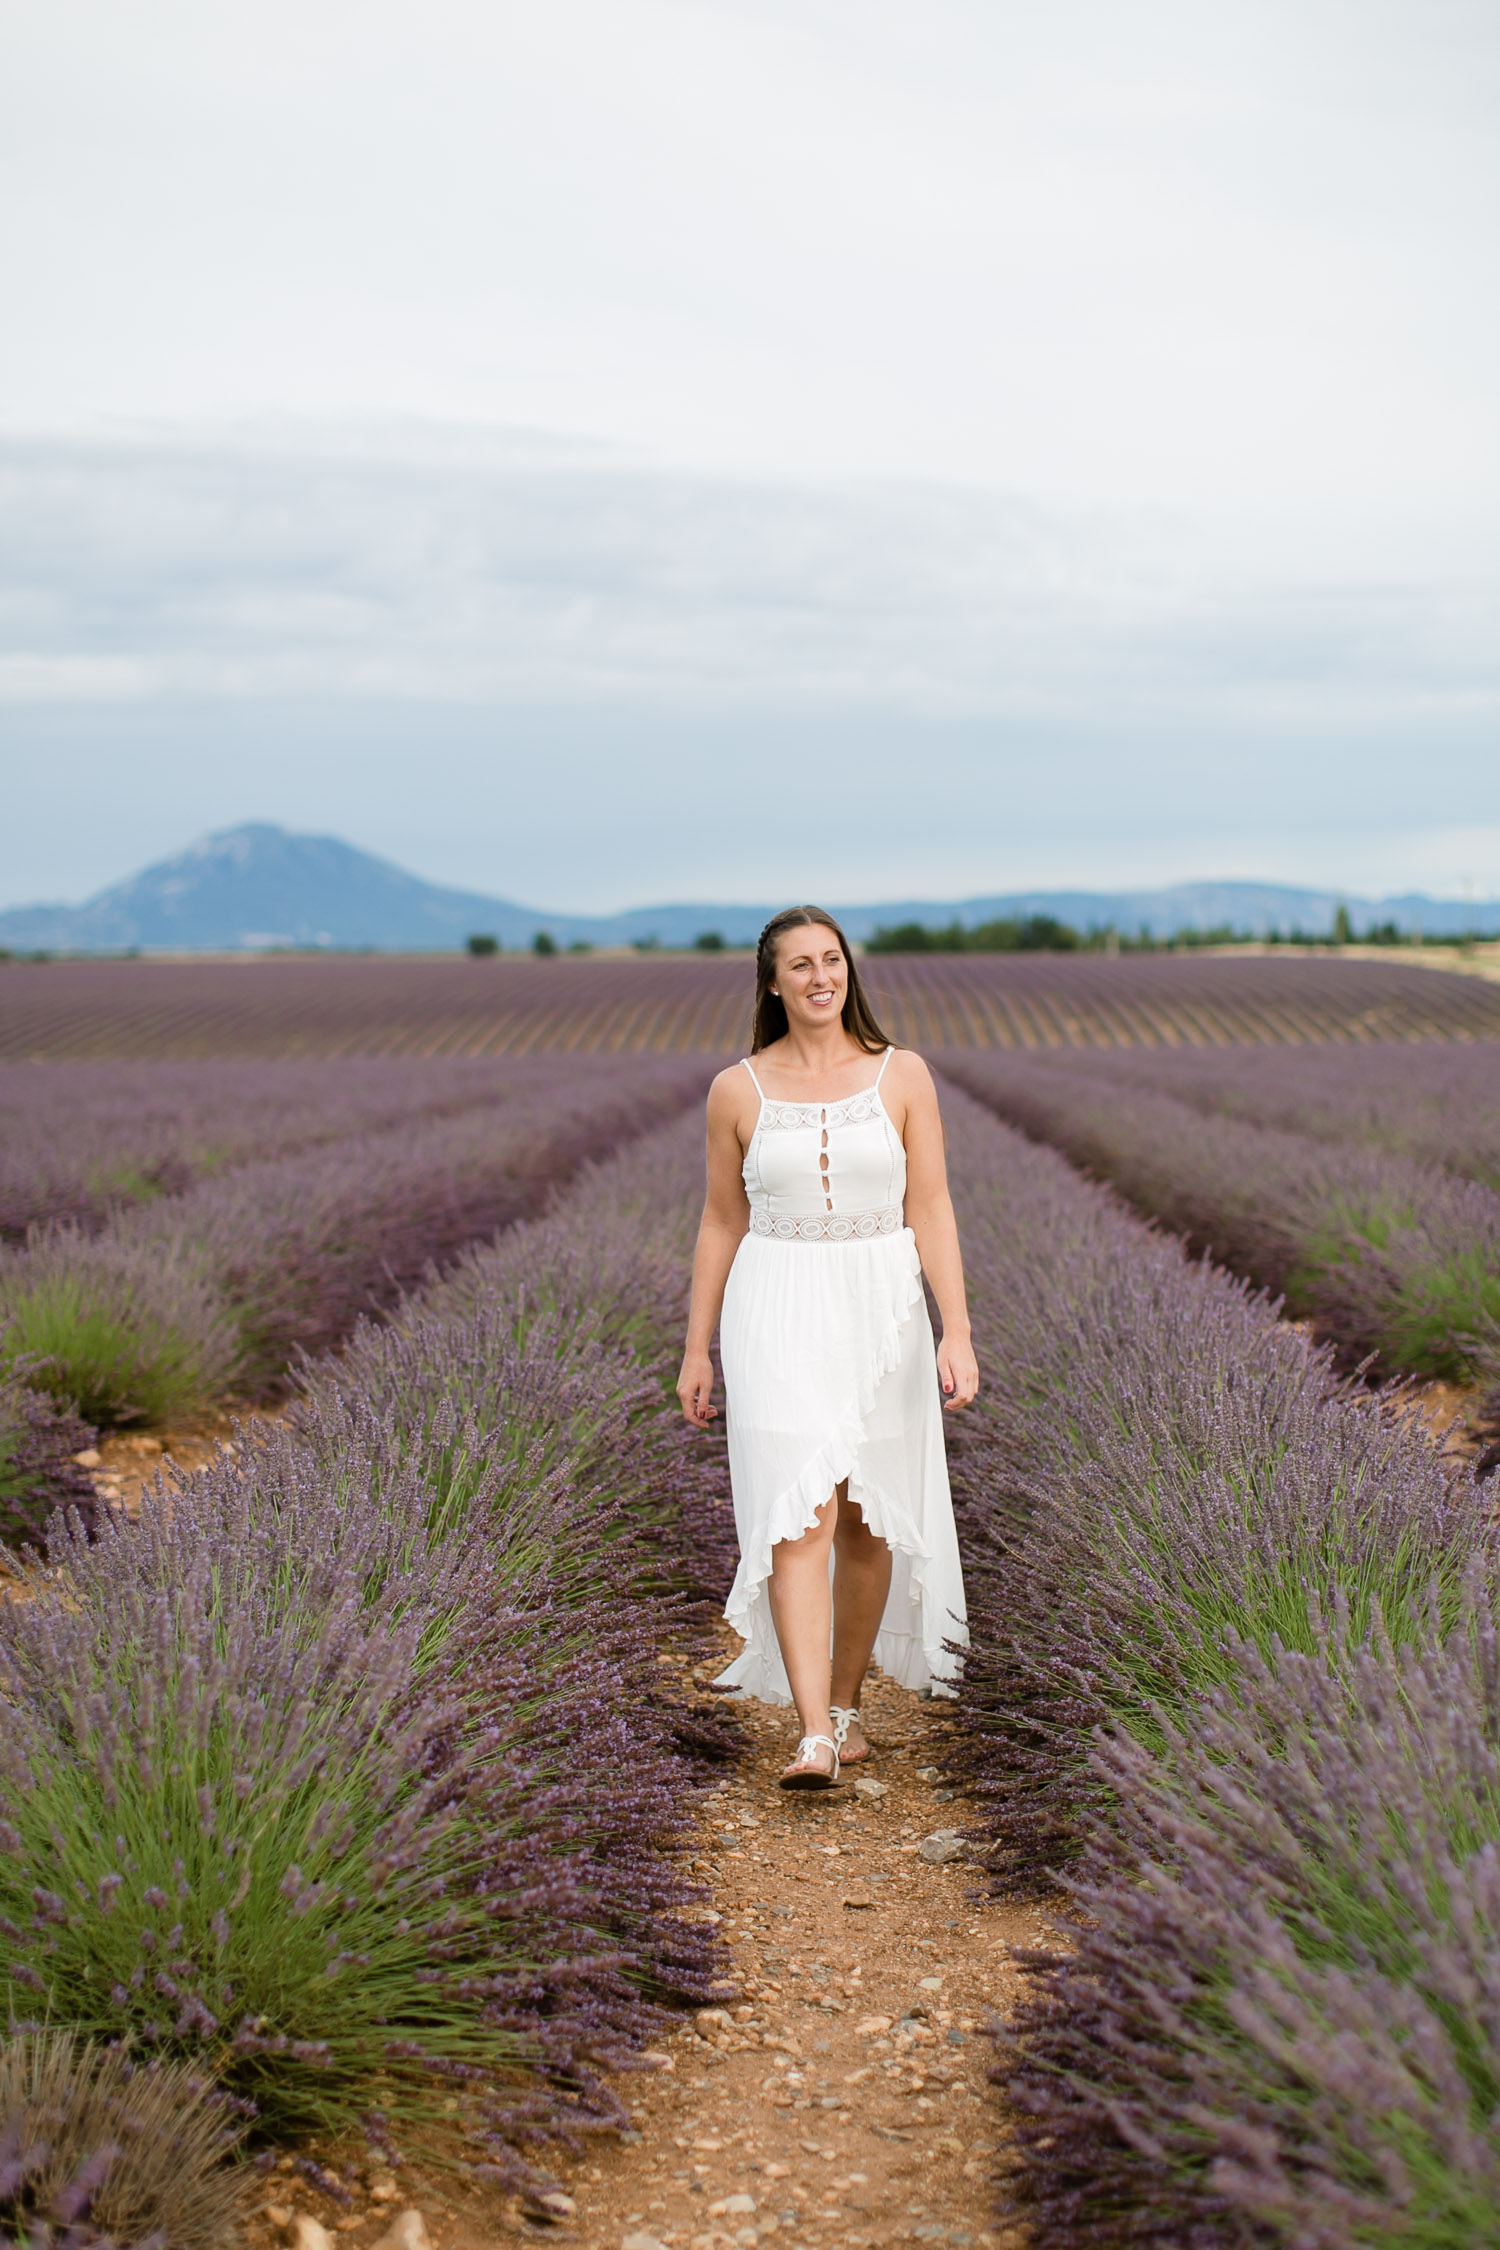 Desination wedding photographer provence